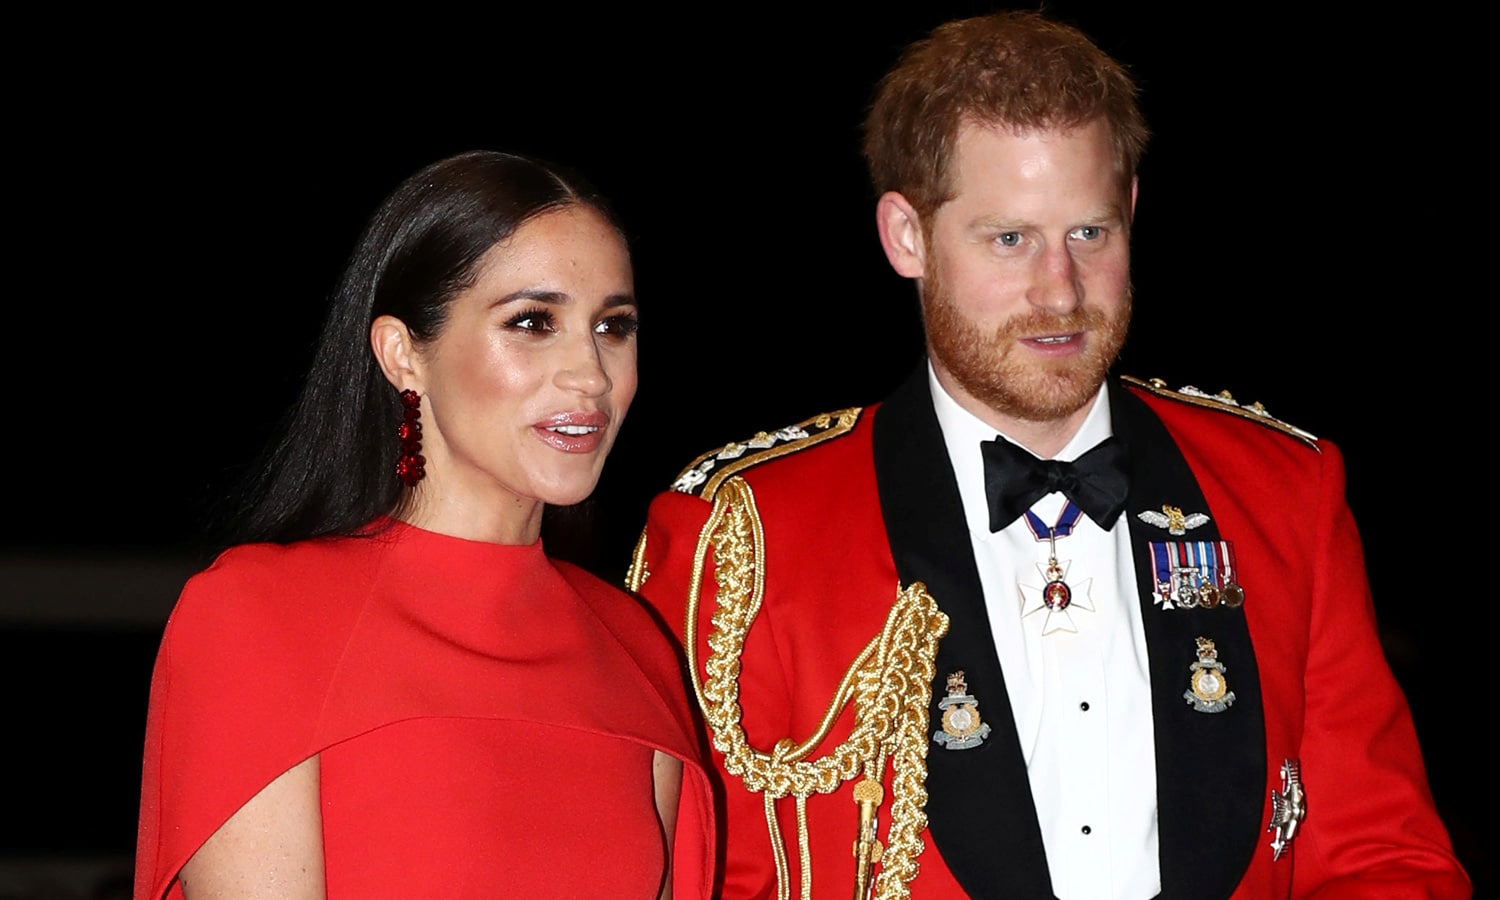 Meghan And Harry Are Living In This Celeb's $18M Beverly Hills Home